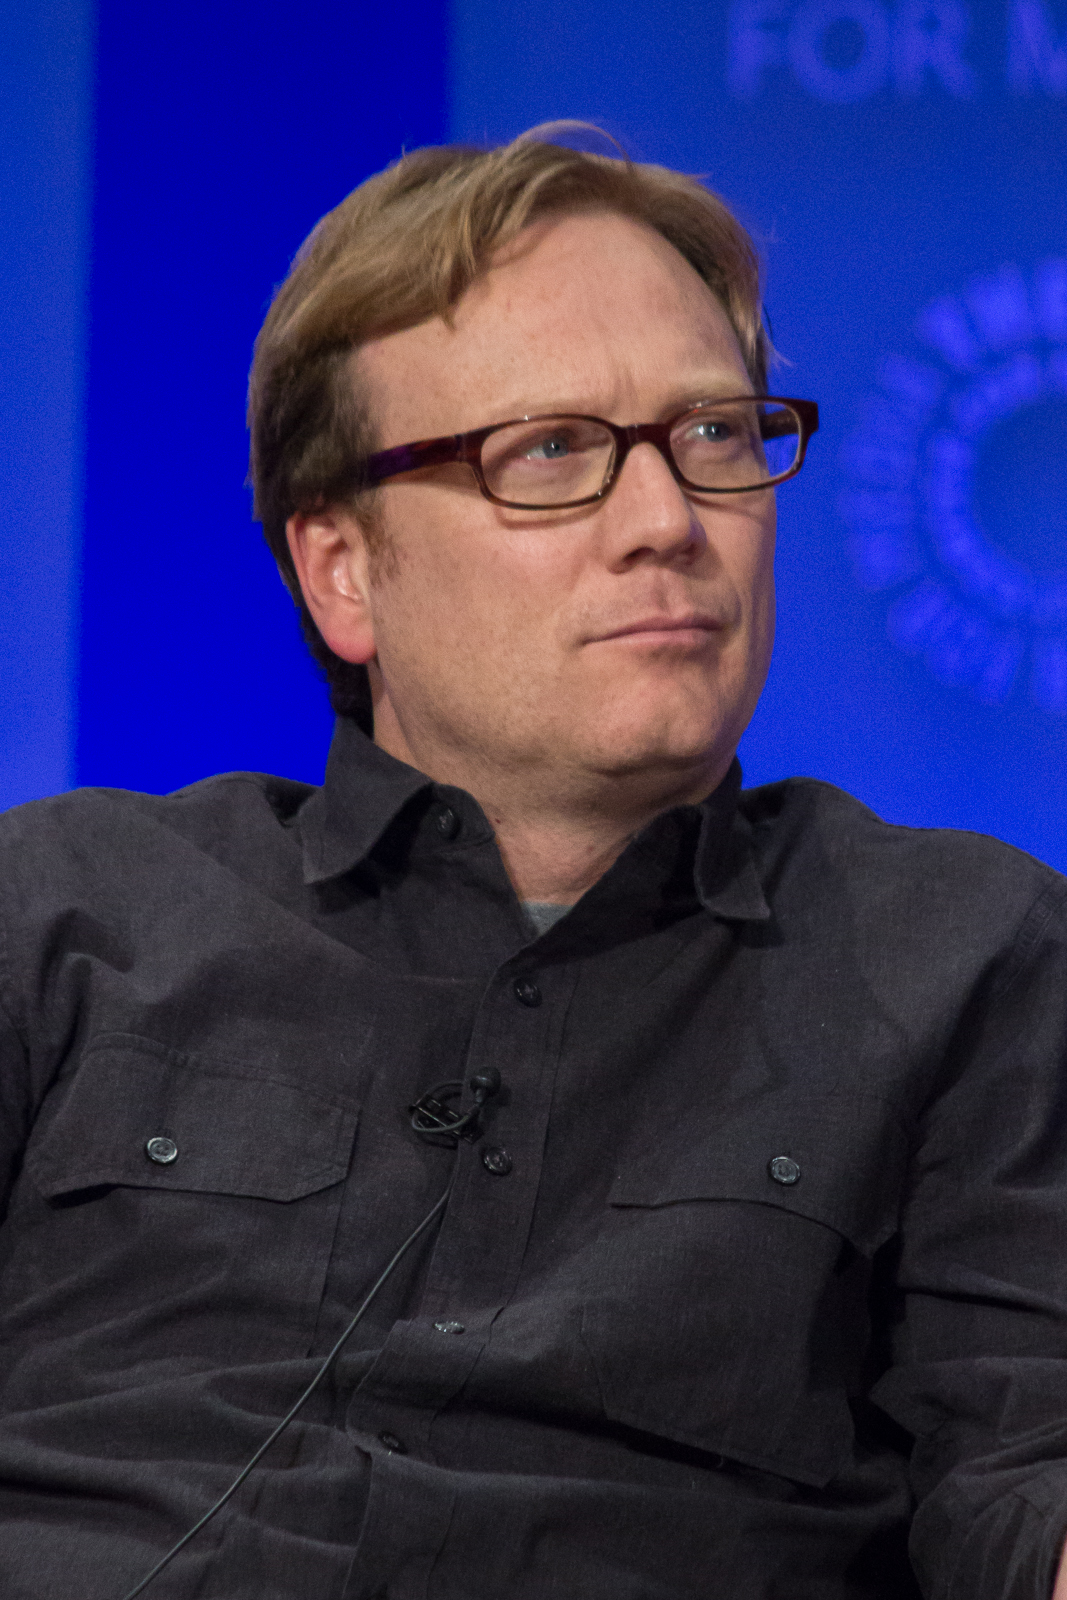 The 47-year old son of father (?) and mother(?) Andy Daly in 2018 photo. Andy Daly earned a  million dollar salary - leaving the net worth at 3 million in 2018